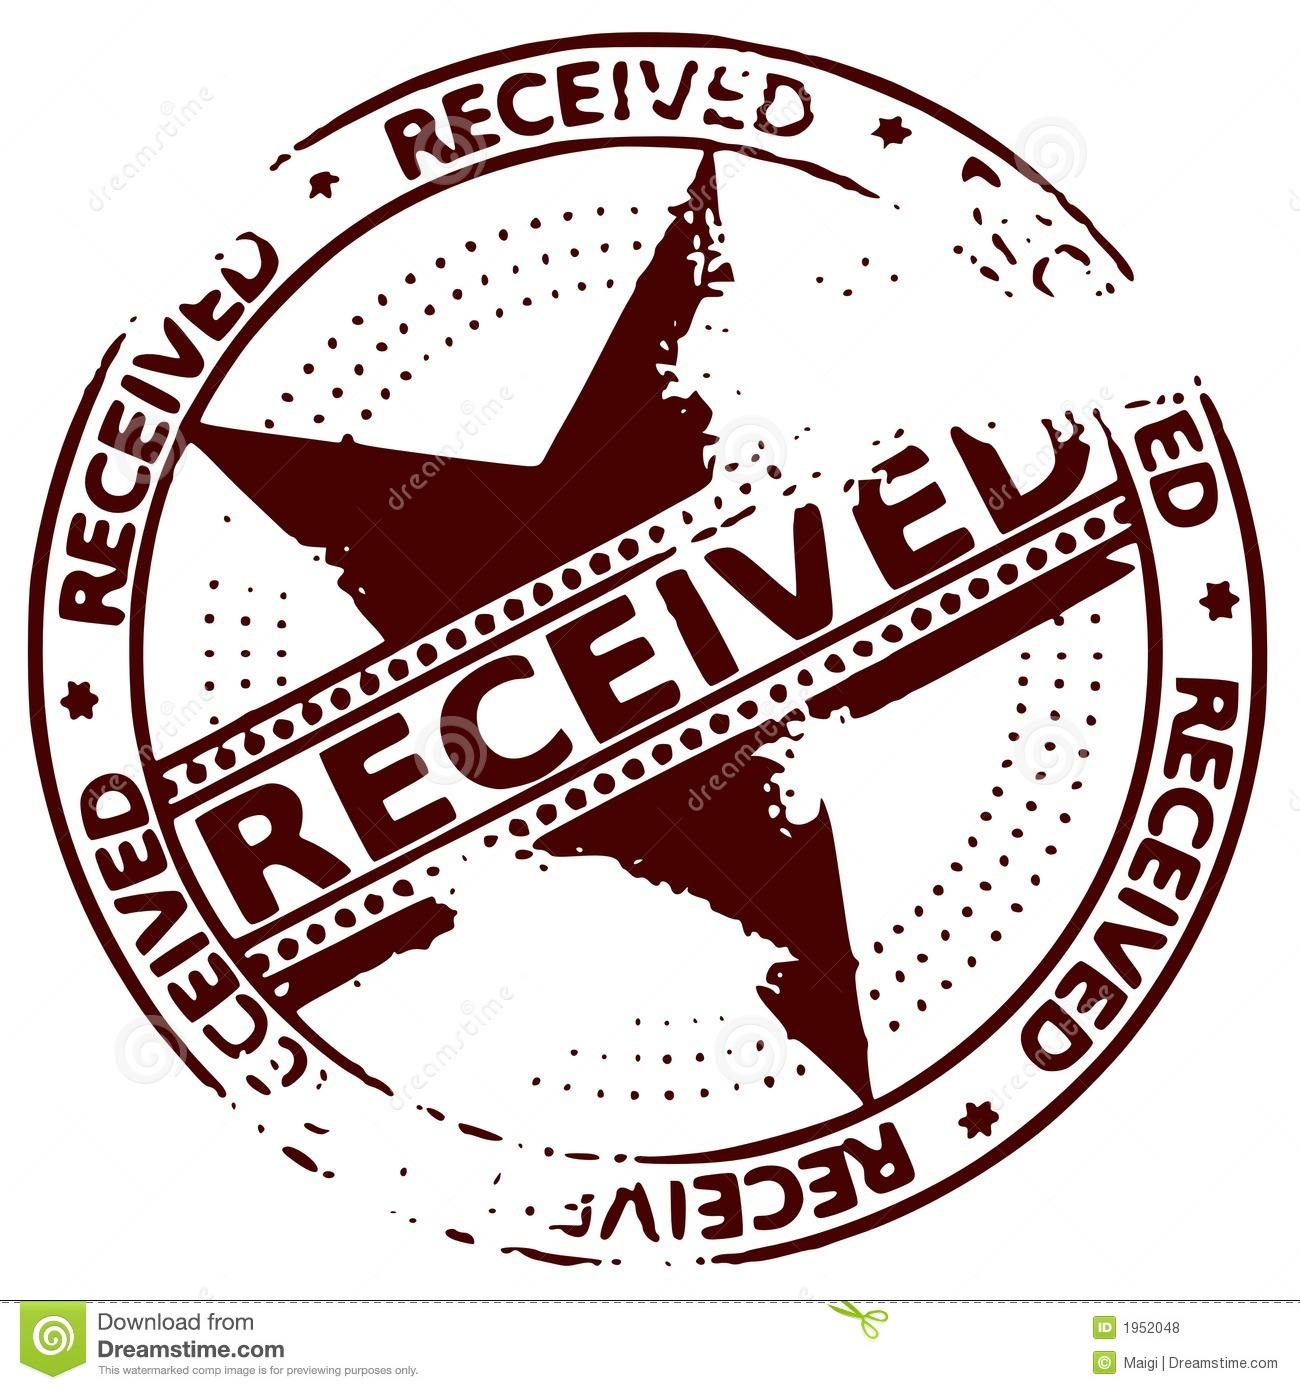 Ink Stamp Received Royalty Free Stock Photos Image 1952048